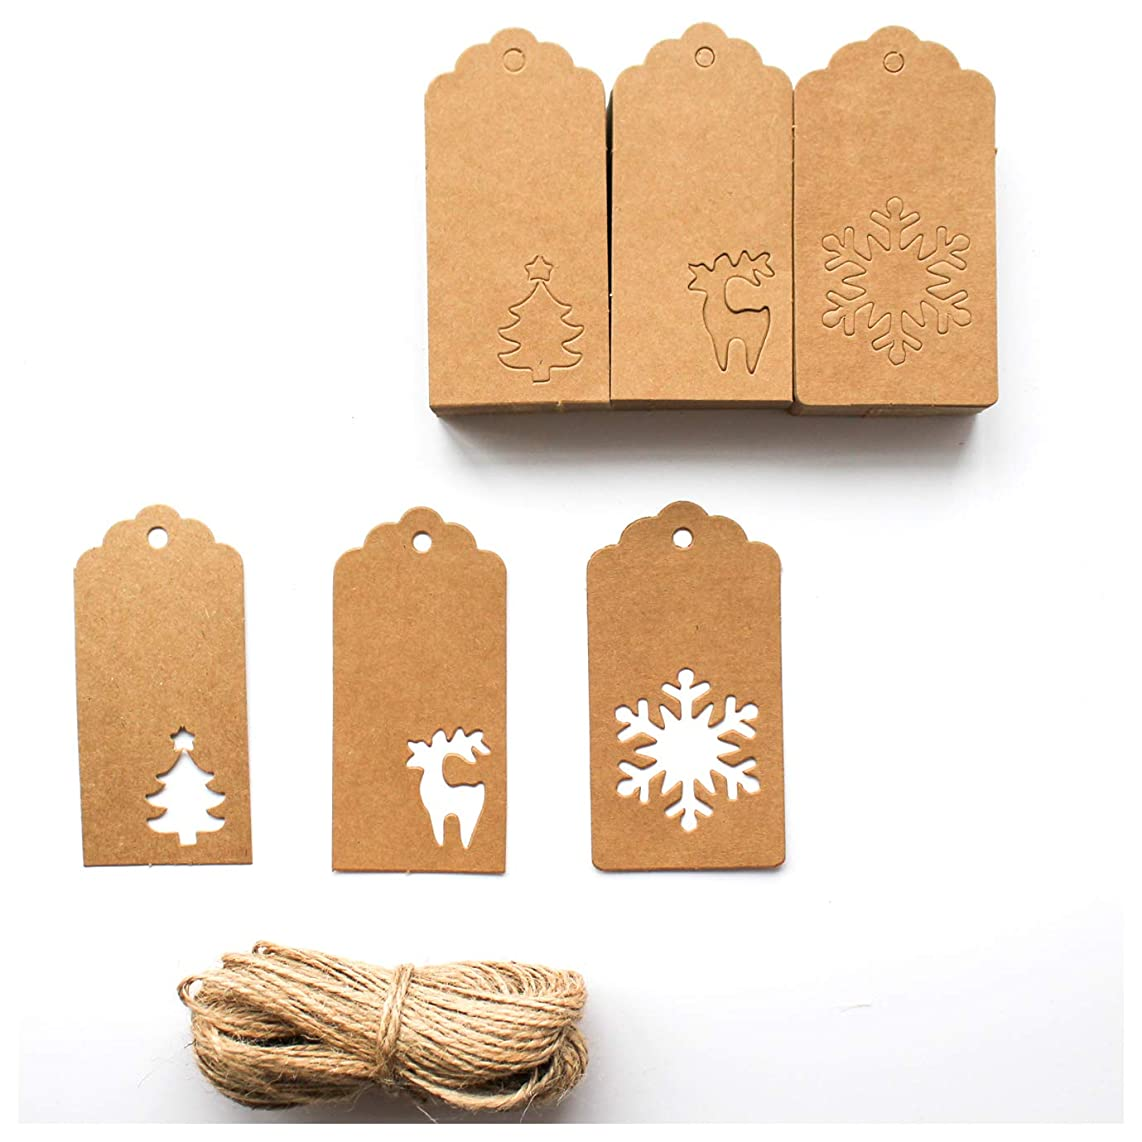 yisi 150 Pieces Paper Tags Kraft Christmas Tags Hang Labels Christmas Tree Snowflake Reindeer Design Favor,DIY Arts and Crafts Wedding Supply with 30 Meters Twine